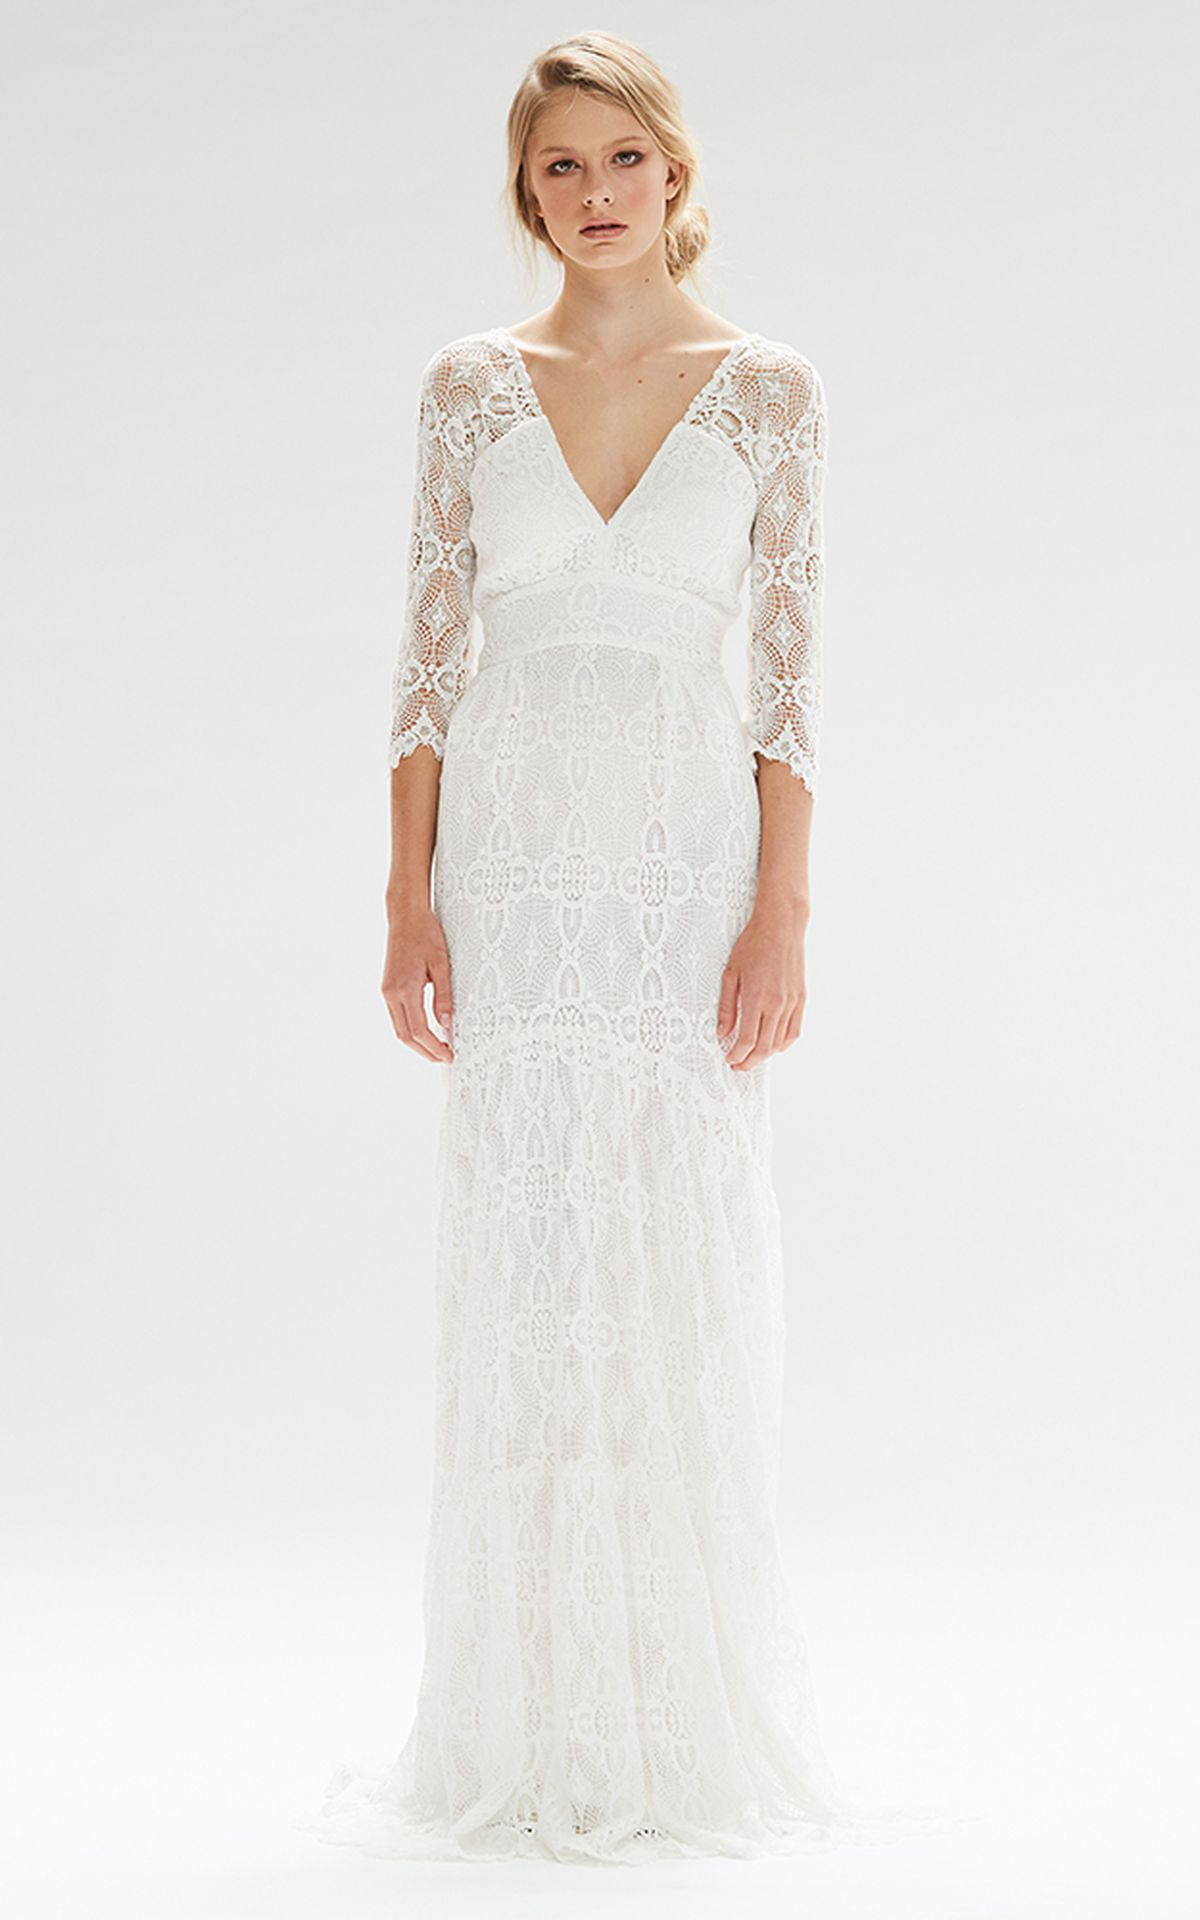 Where To Buy Affordable Wedding Dresses